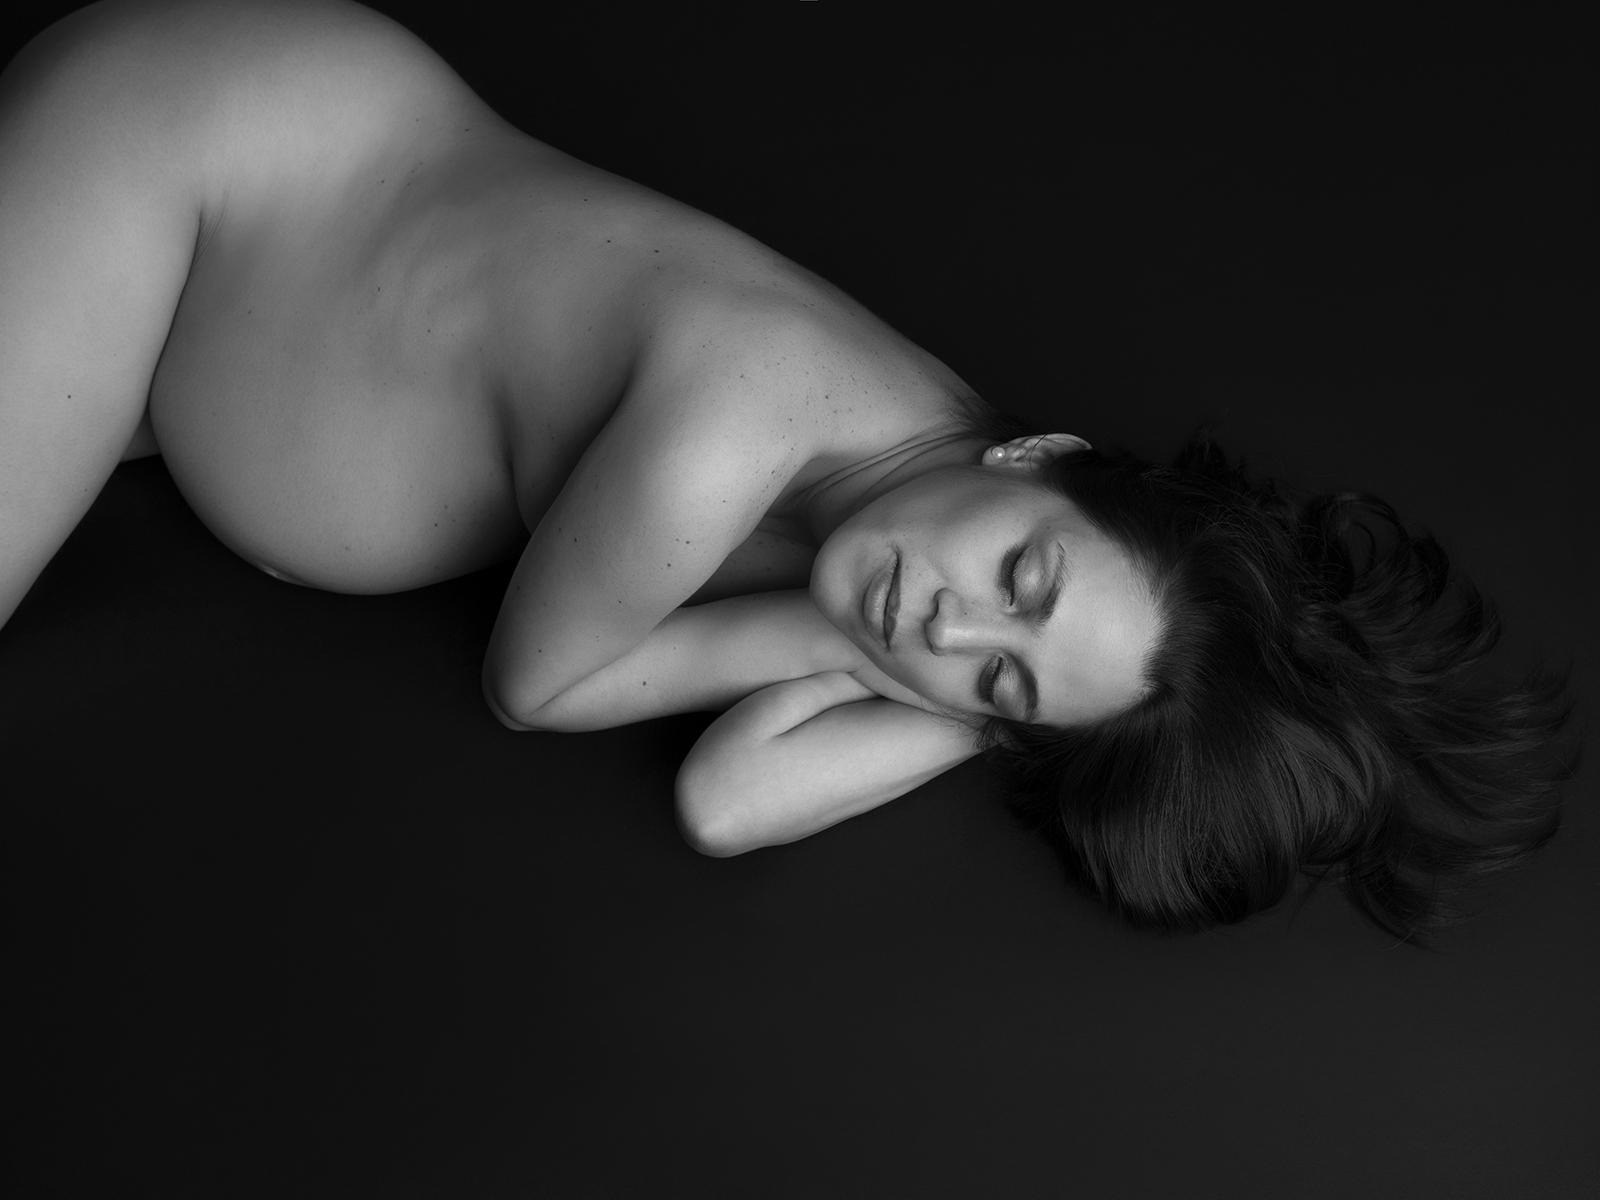 Black and white semi nude photograph of mum to be. Close up image with her laying on the floor. Black back drop used.